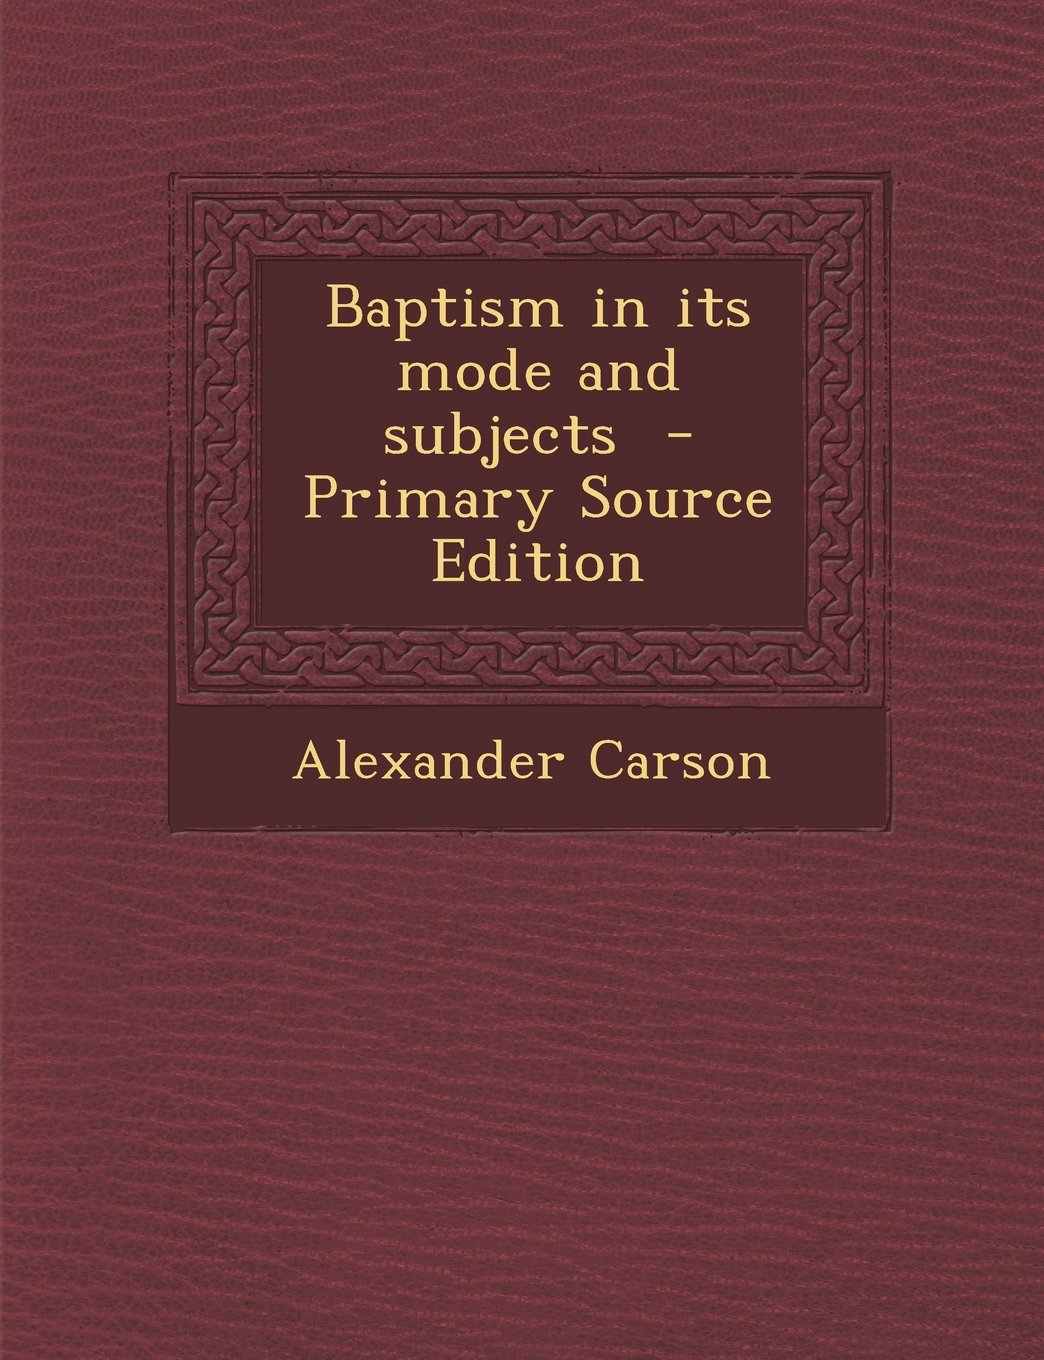 Baptism in its mode and subjects ePub fb2 ebook